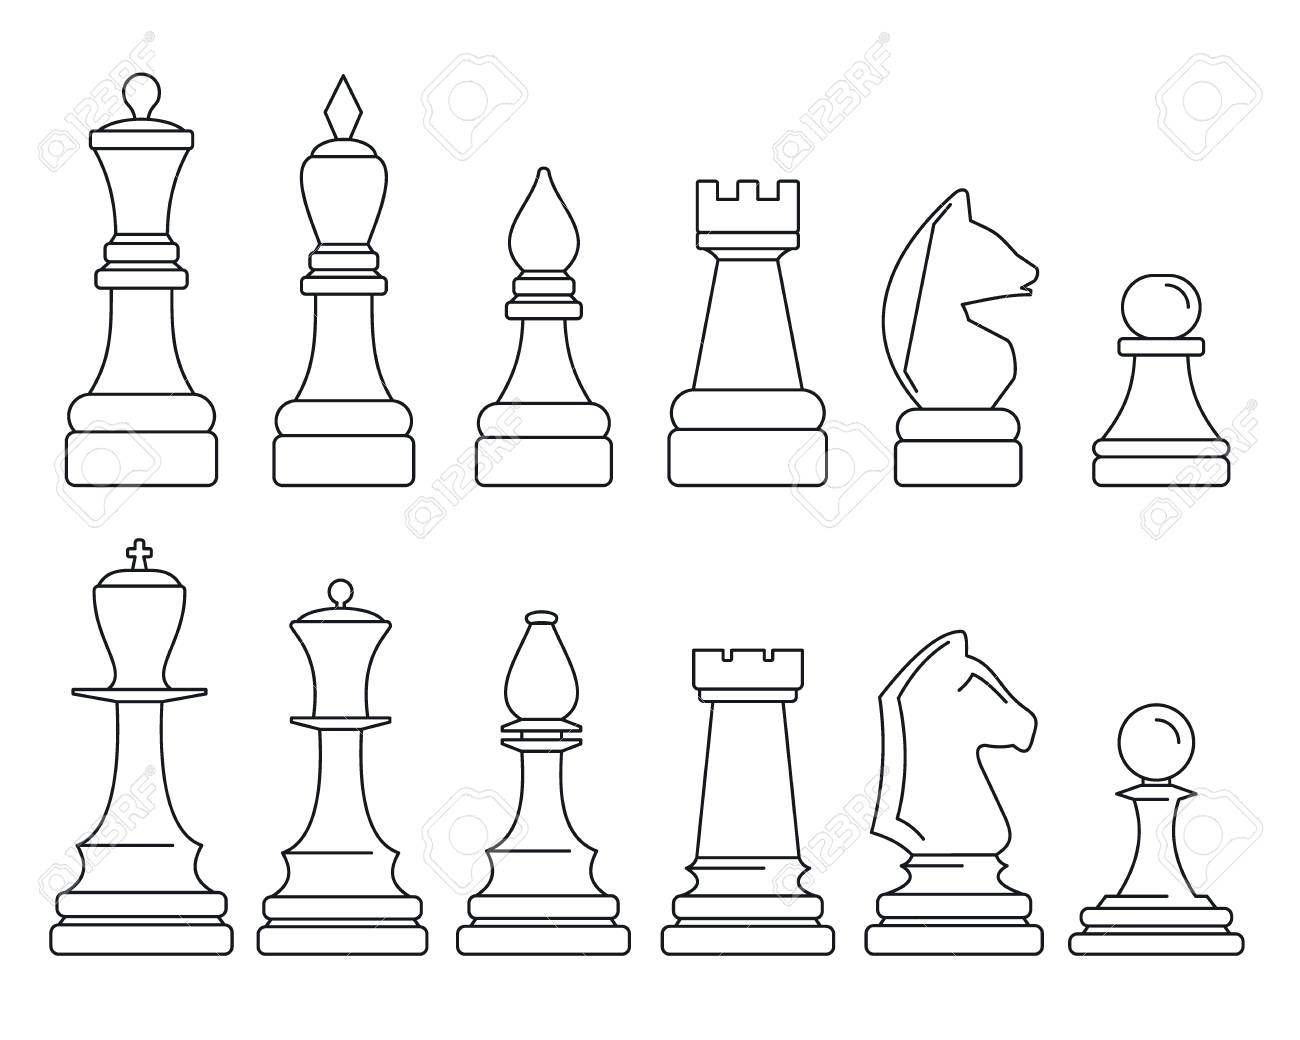 picture about Printable Chess Pieces referred to as Chess piece icon preset, determine design and style